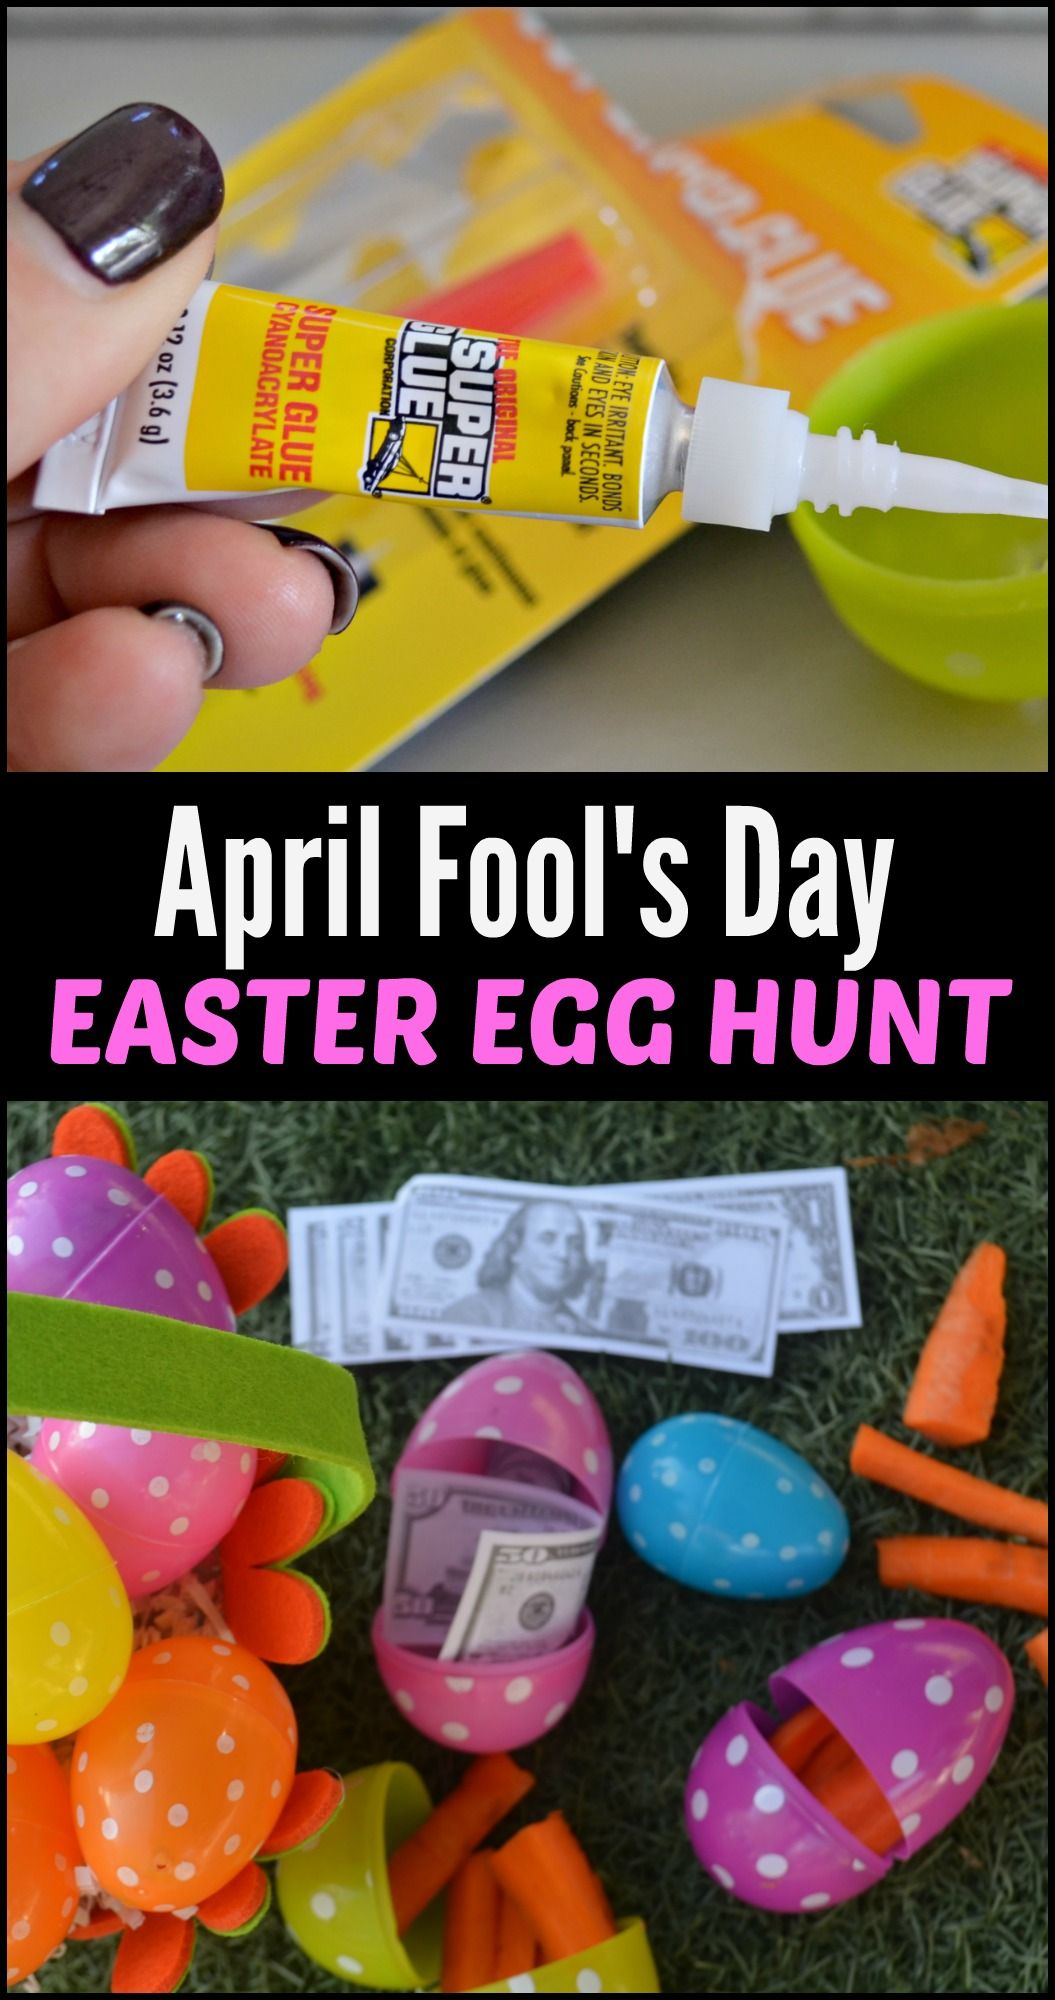 Fun And Funny Diy April Fool S Day Easter Egg Hunt